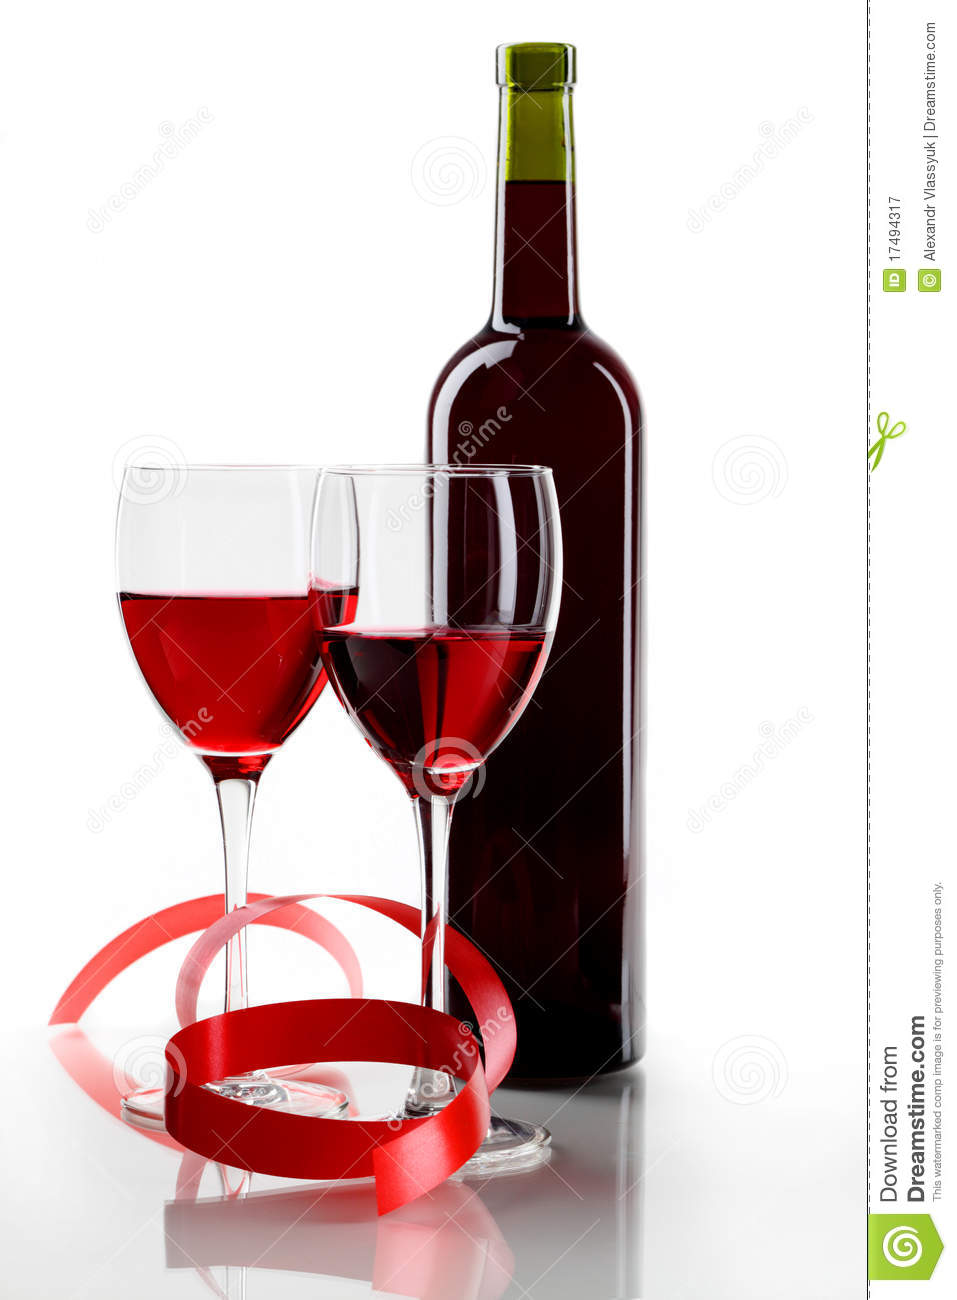 bottle with red wine and glass bottle red wine